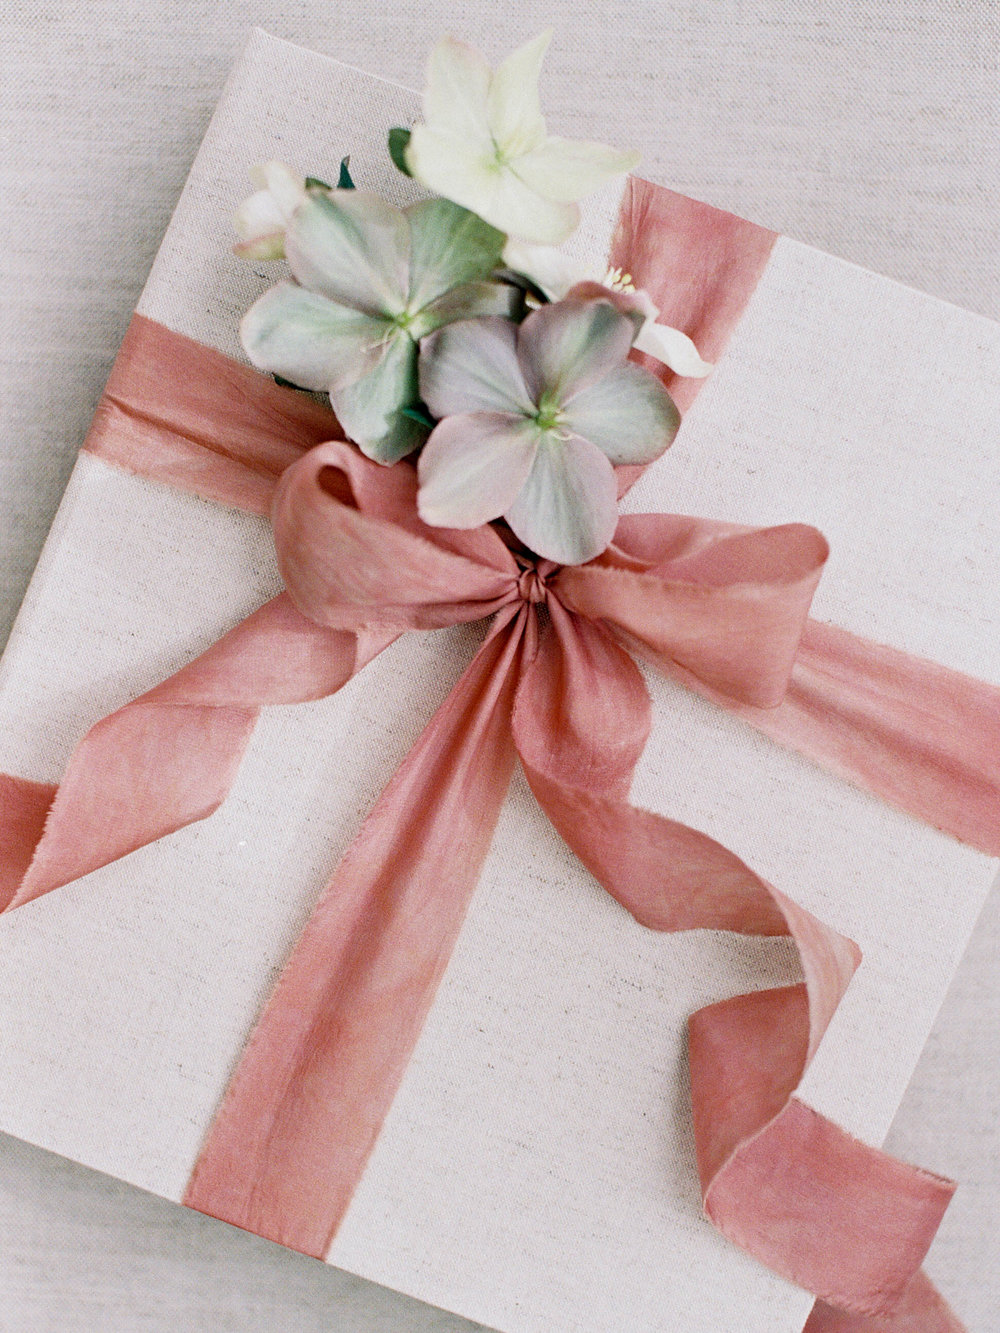 Album and Clamshell Case with Frou Frou Chic Ribbon and Hellebores